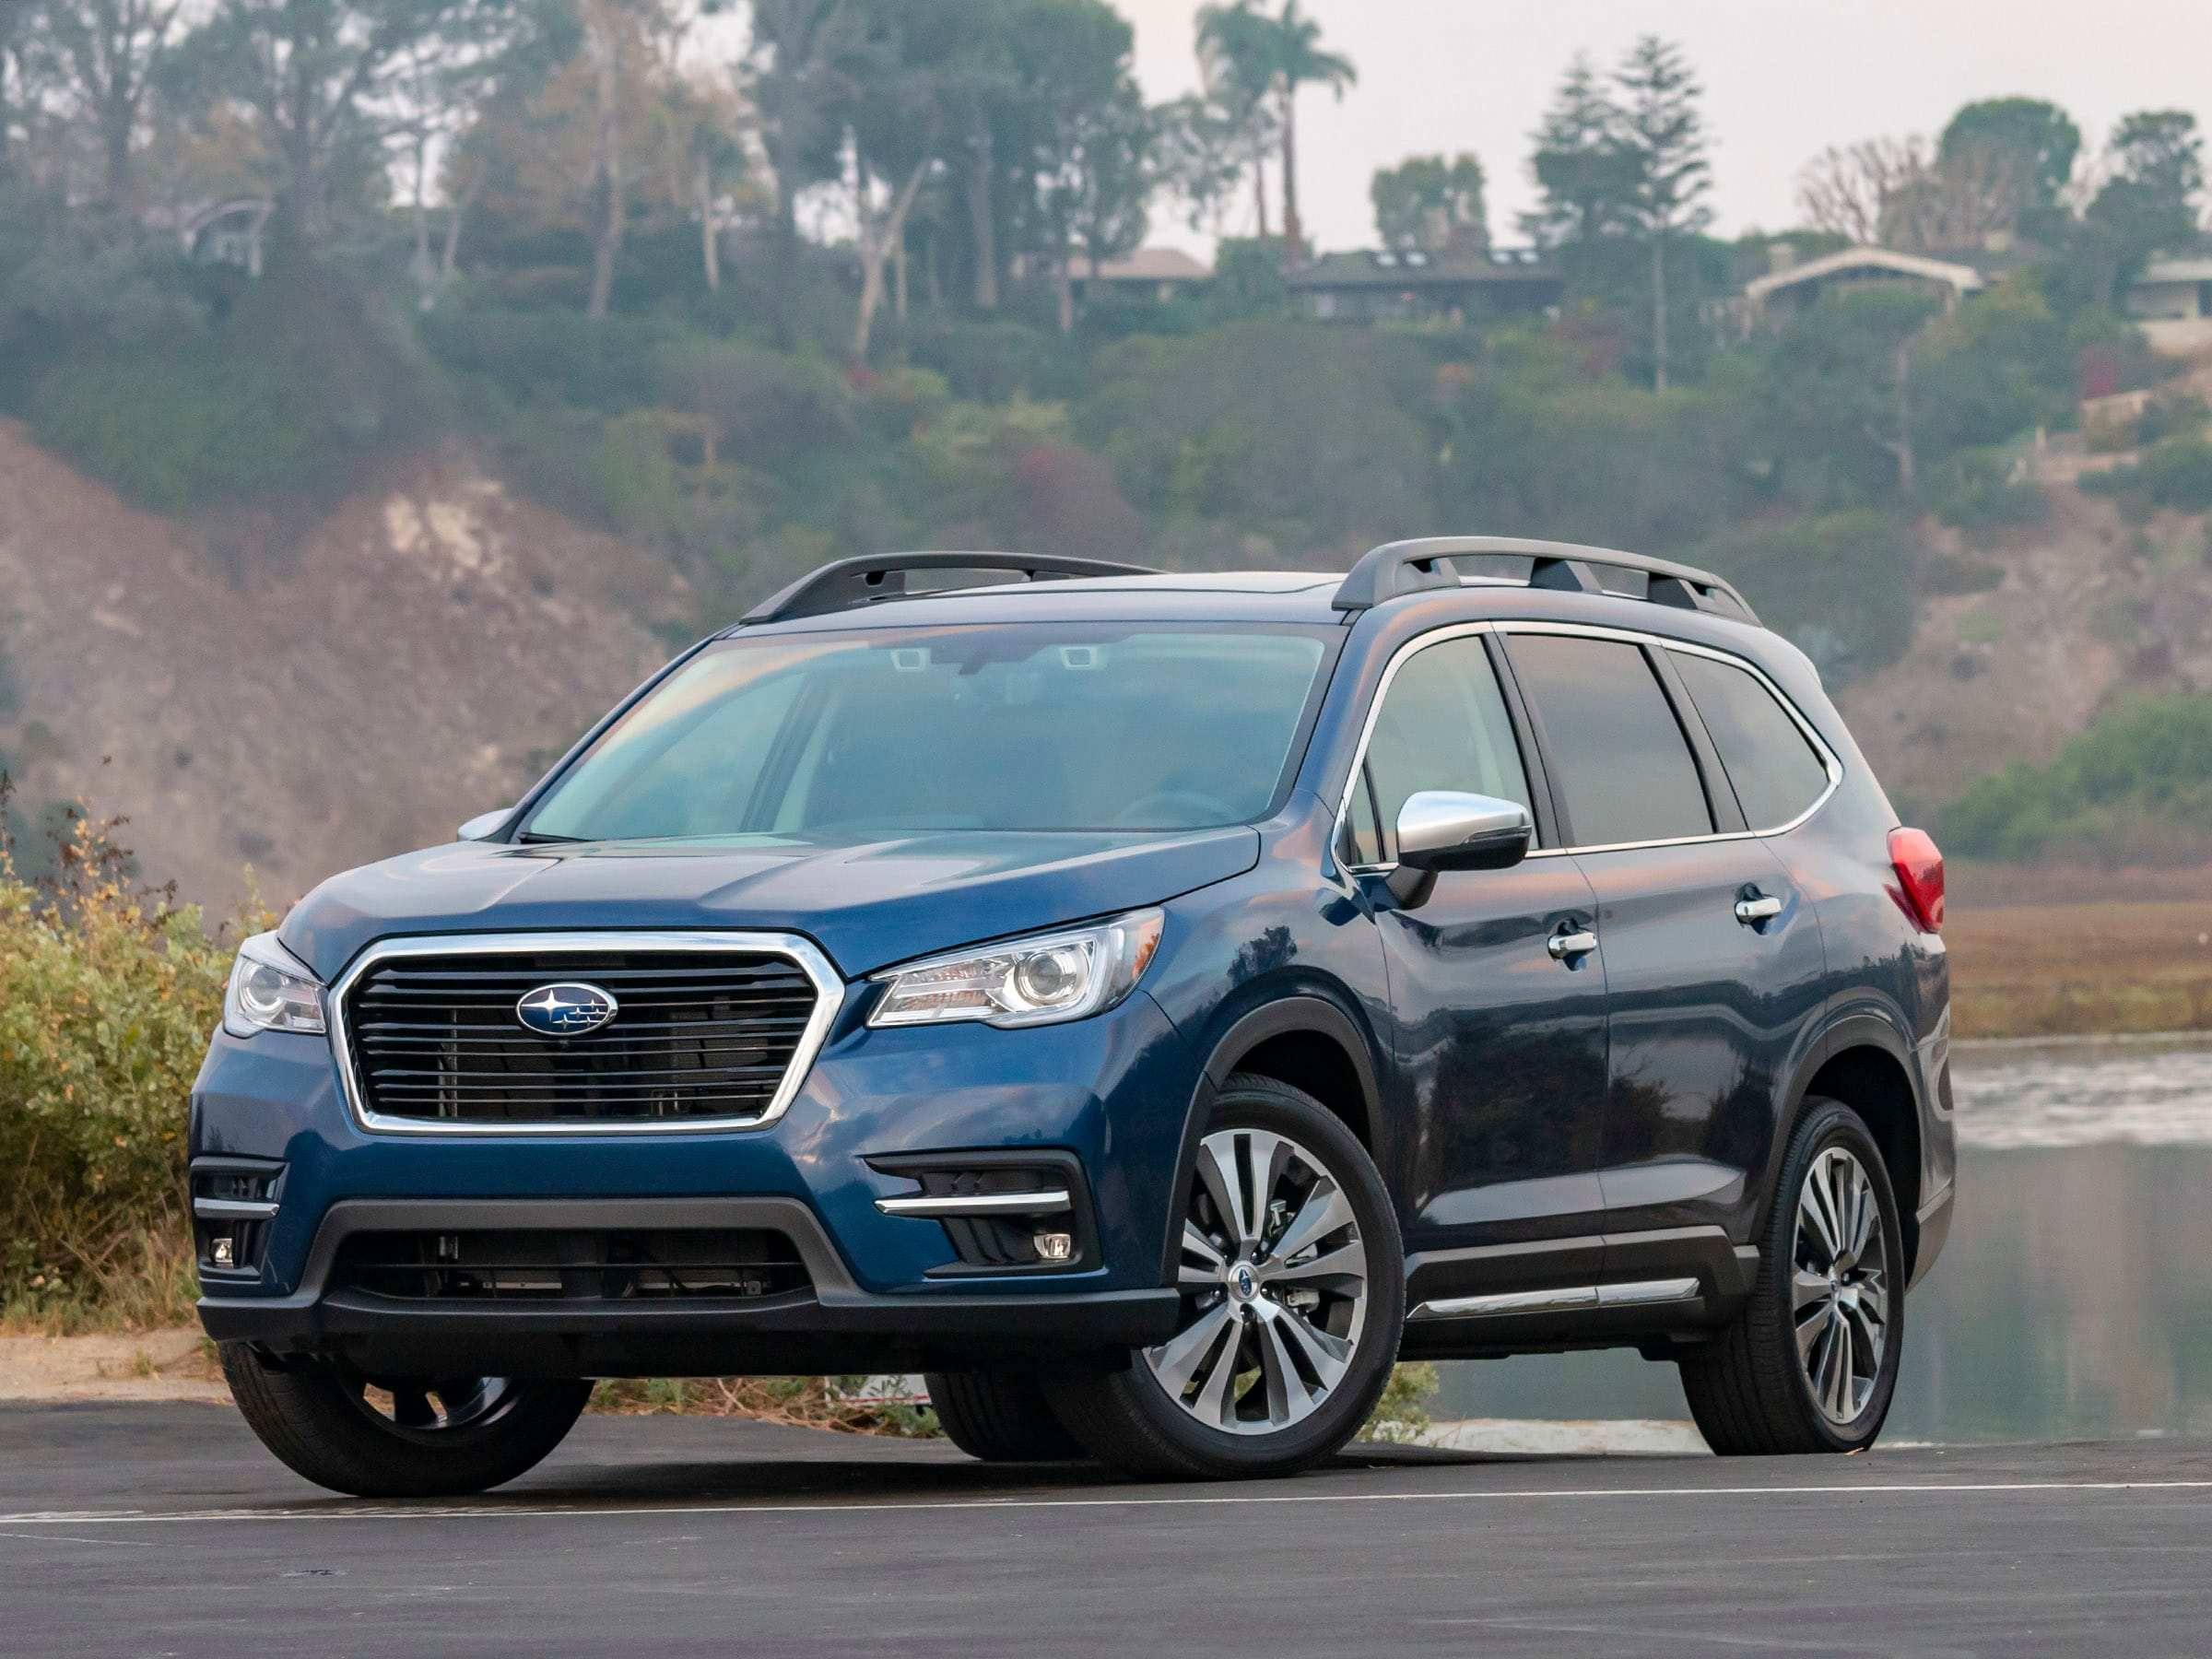 65 Best Review 2019 Subaru Ascent Mpg Speed Test for 2019 Subaru Ascent Mpg